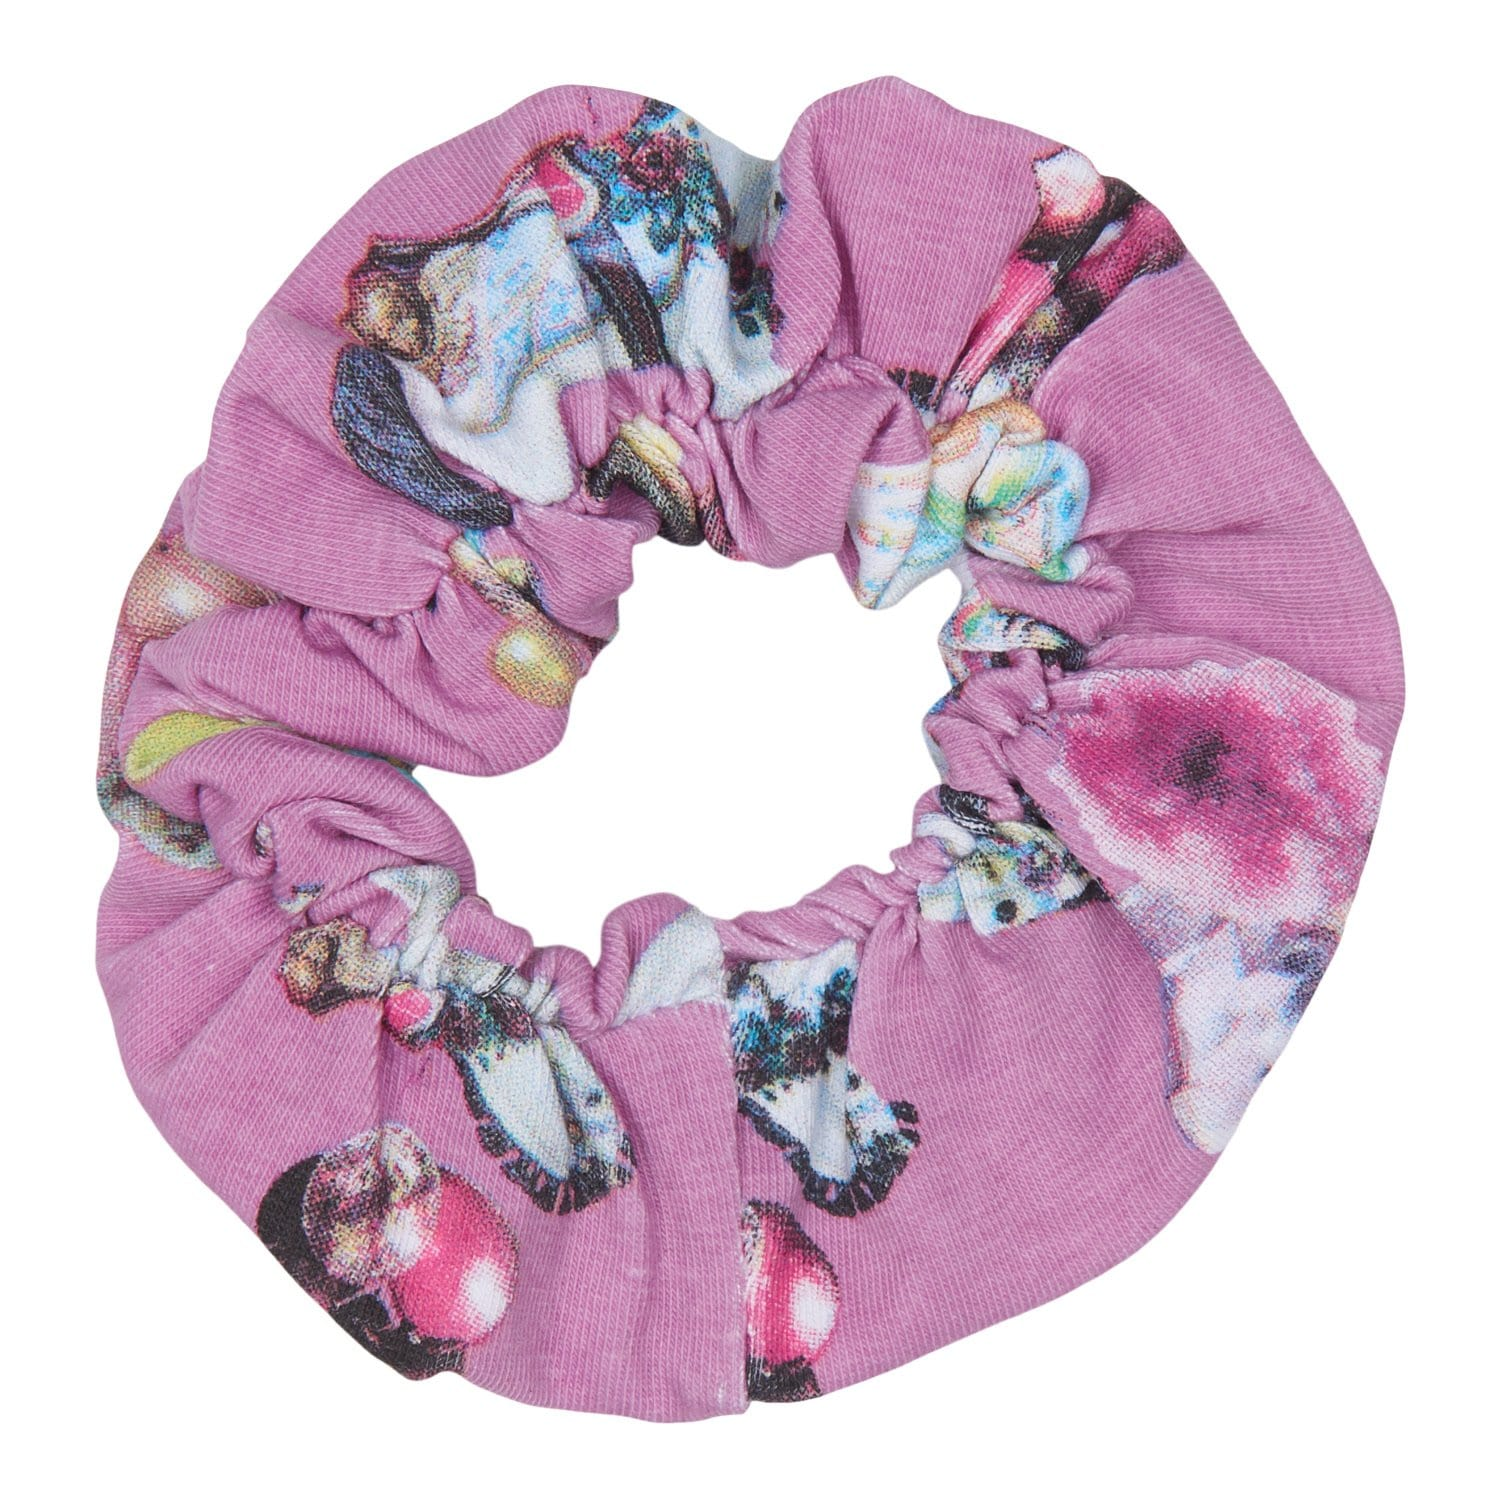 HAPPY CALEGI KYA CAROUSEL SCRUNCHIE